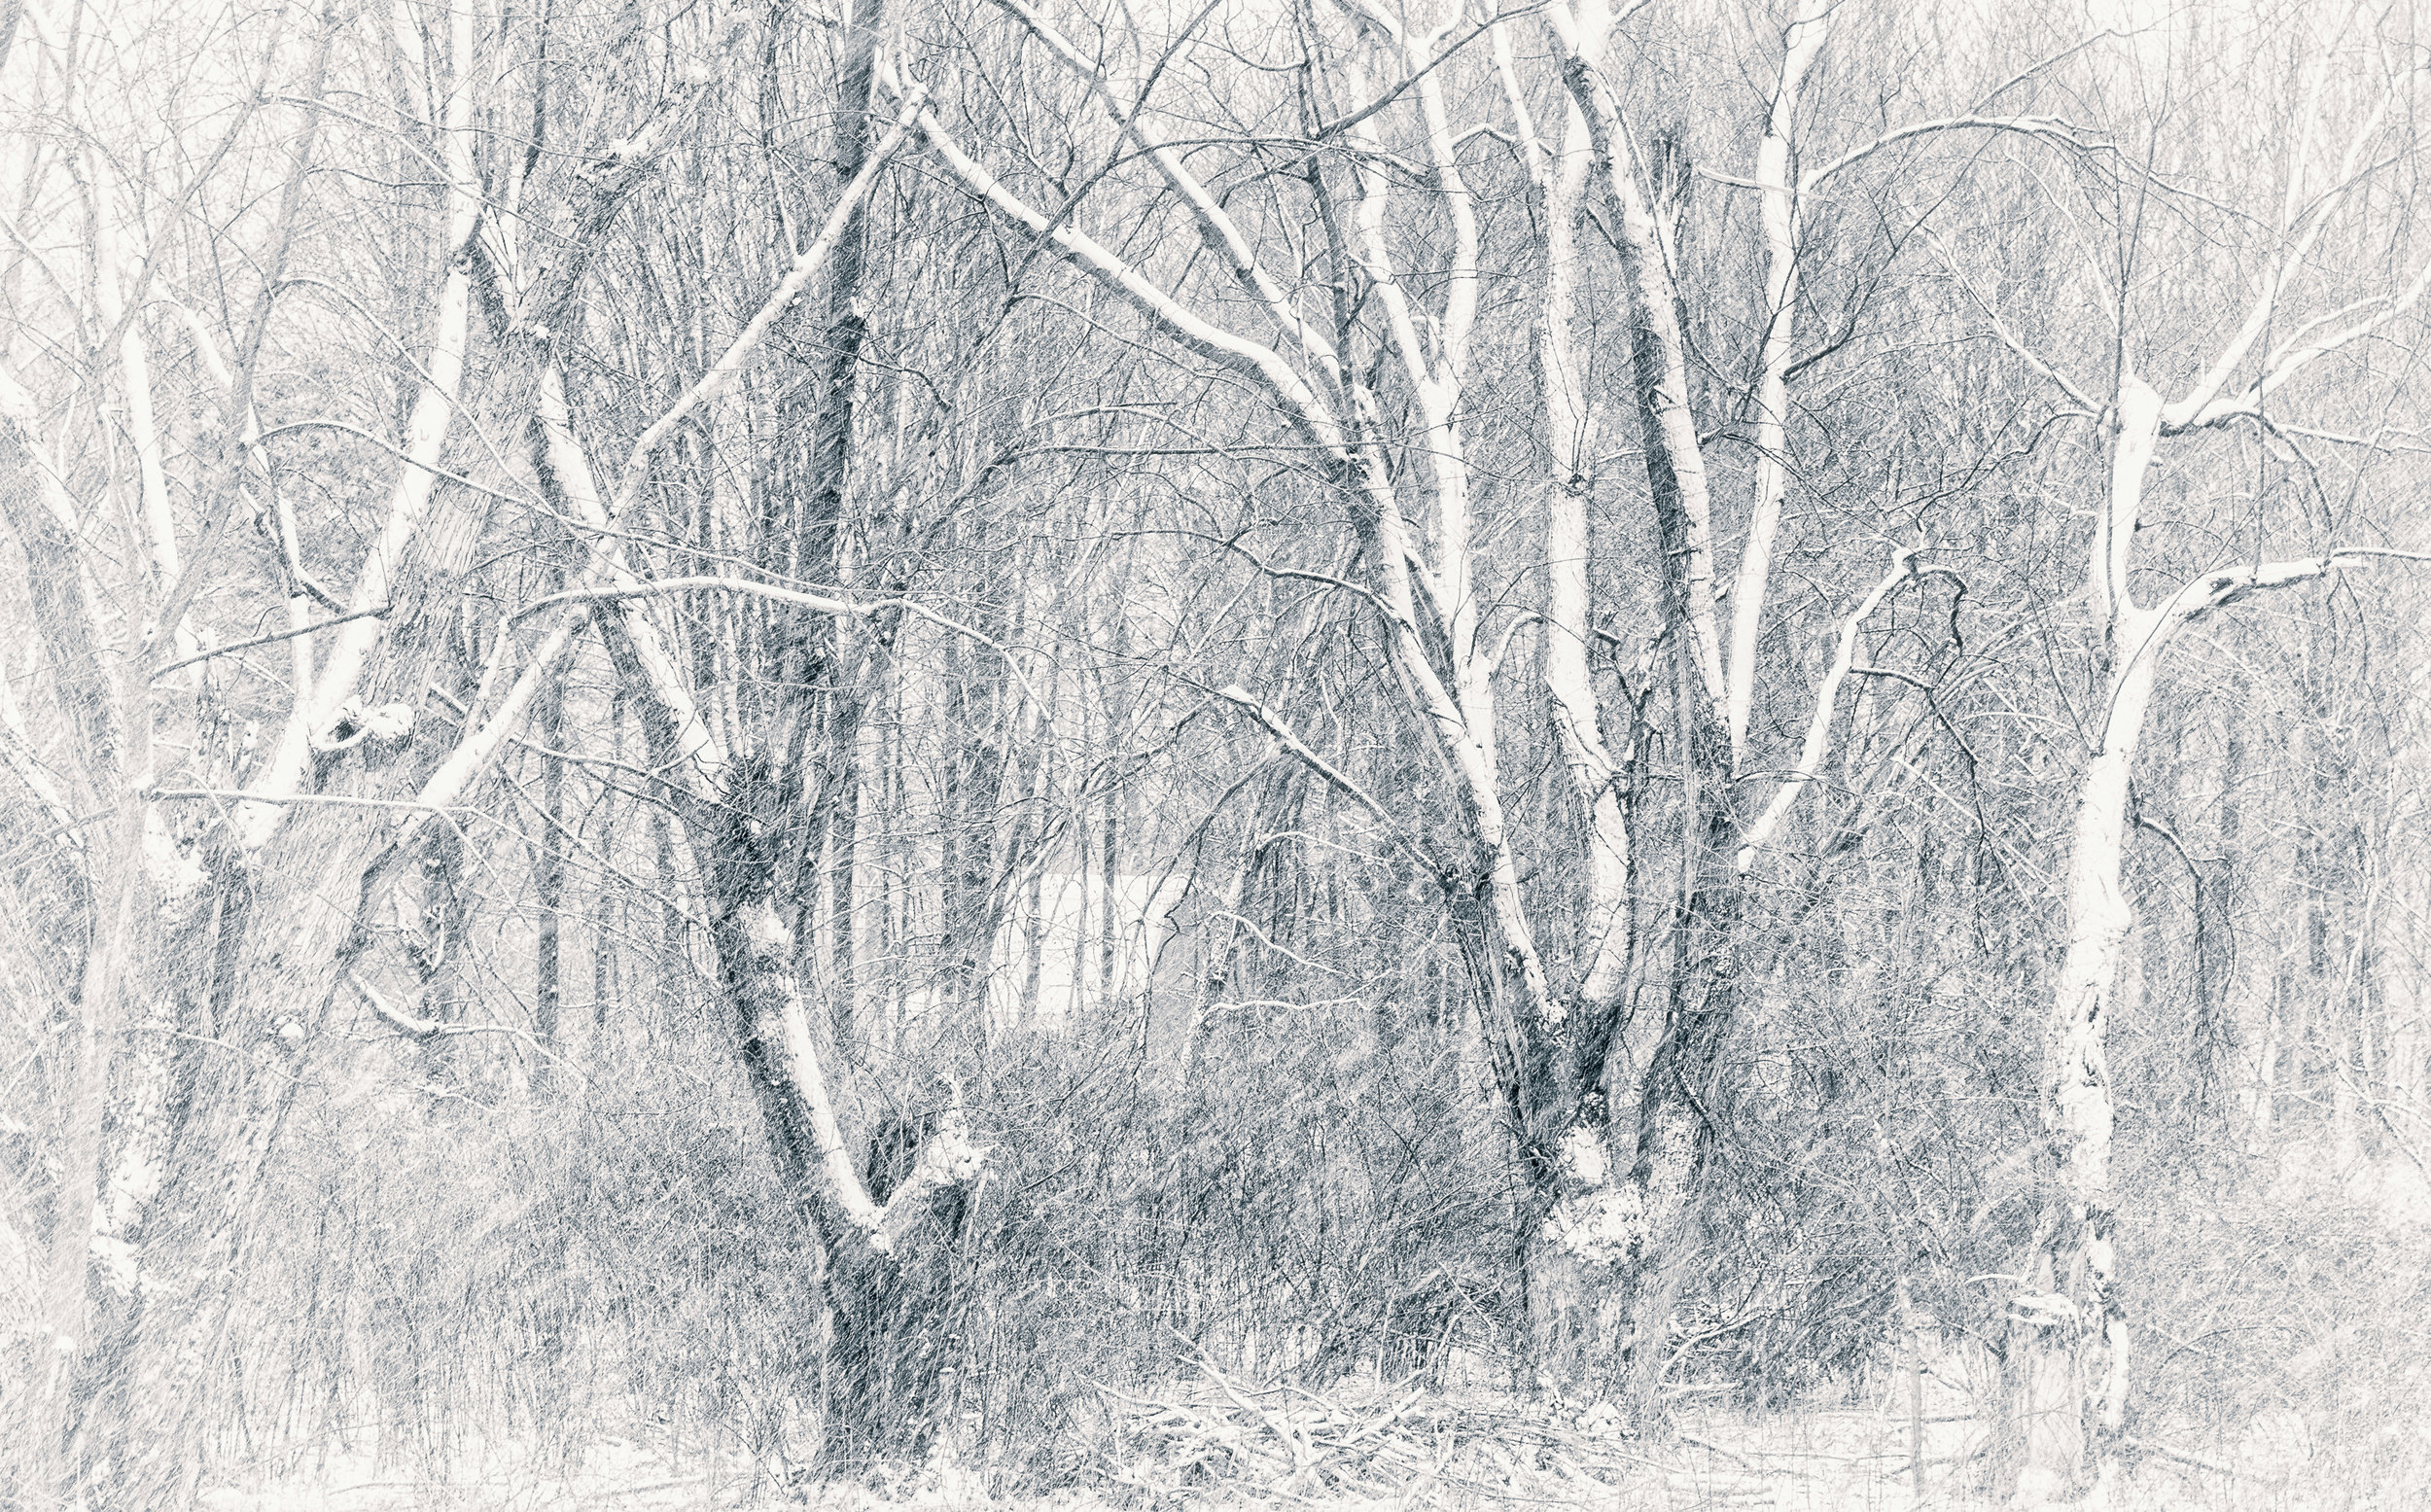 Snow in the Trees - Nikon D750, 1/50 @ f/8.0, ISO320, 98mm. Processed with a high-key tone in Topaz Silver Efex Pro. See the poem of the same title in the Poetry Section.